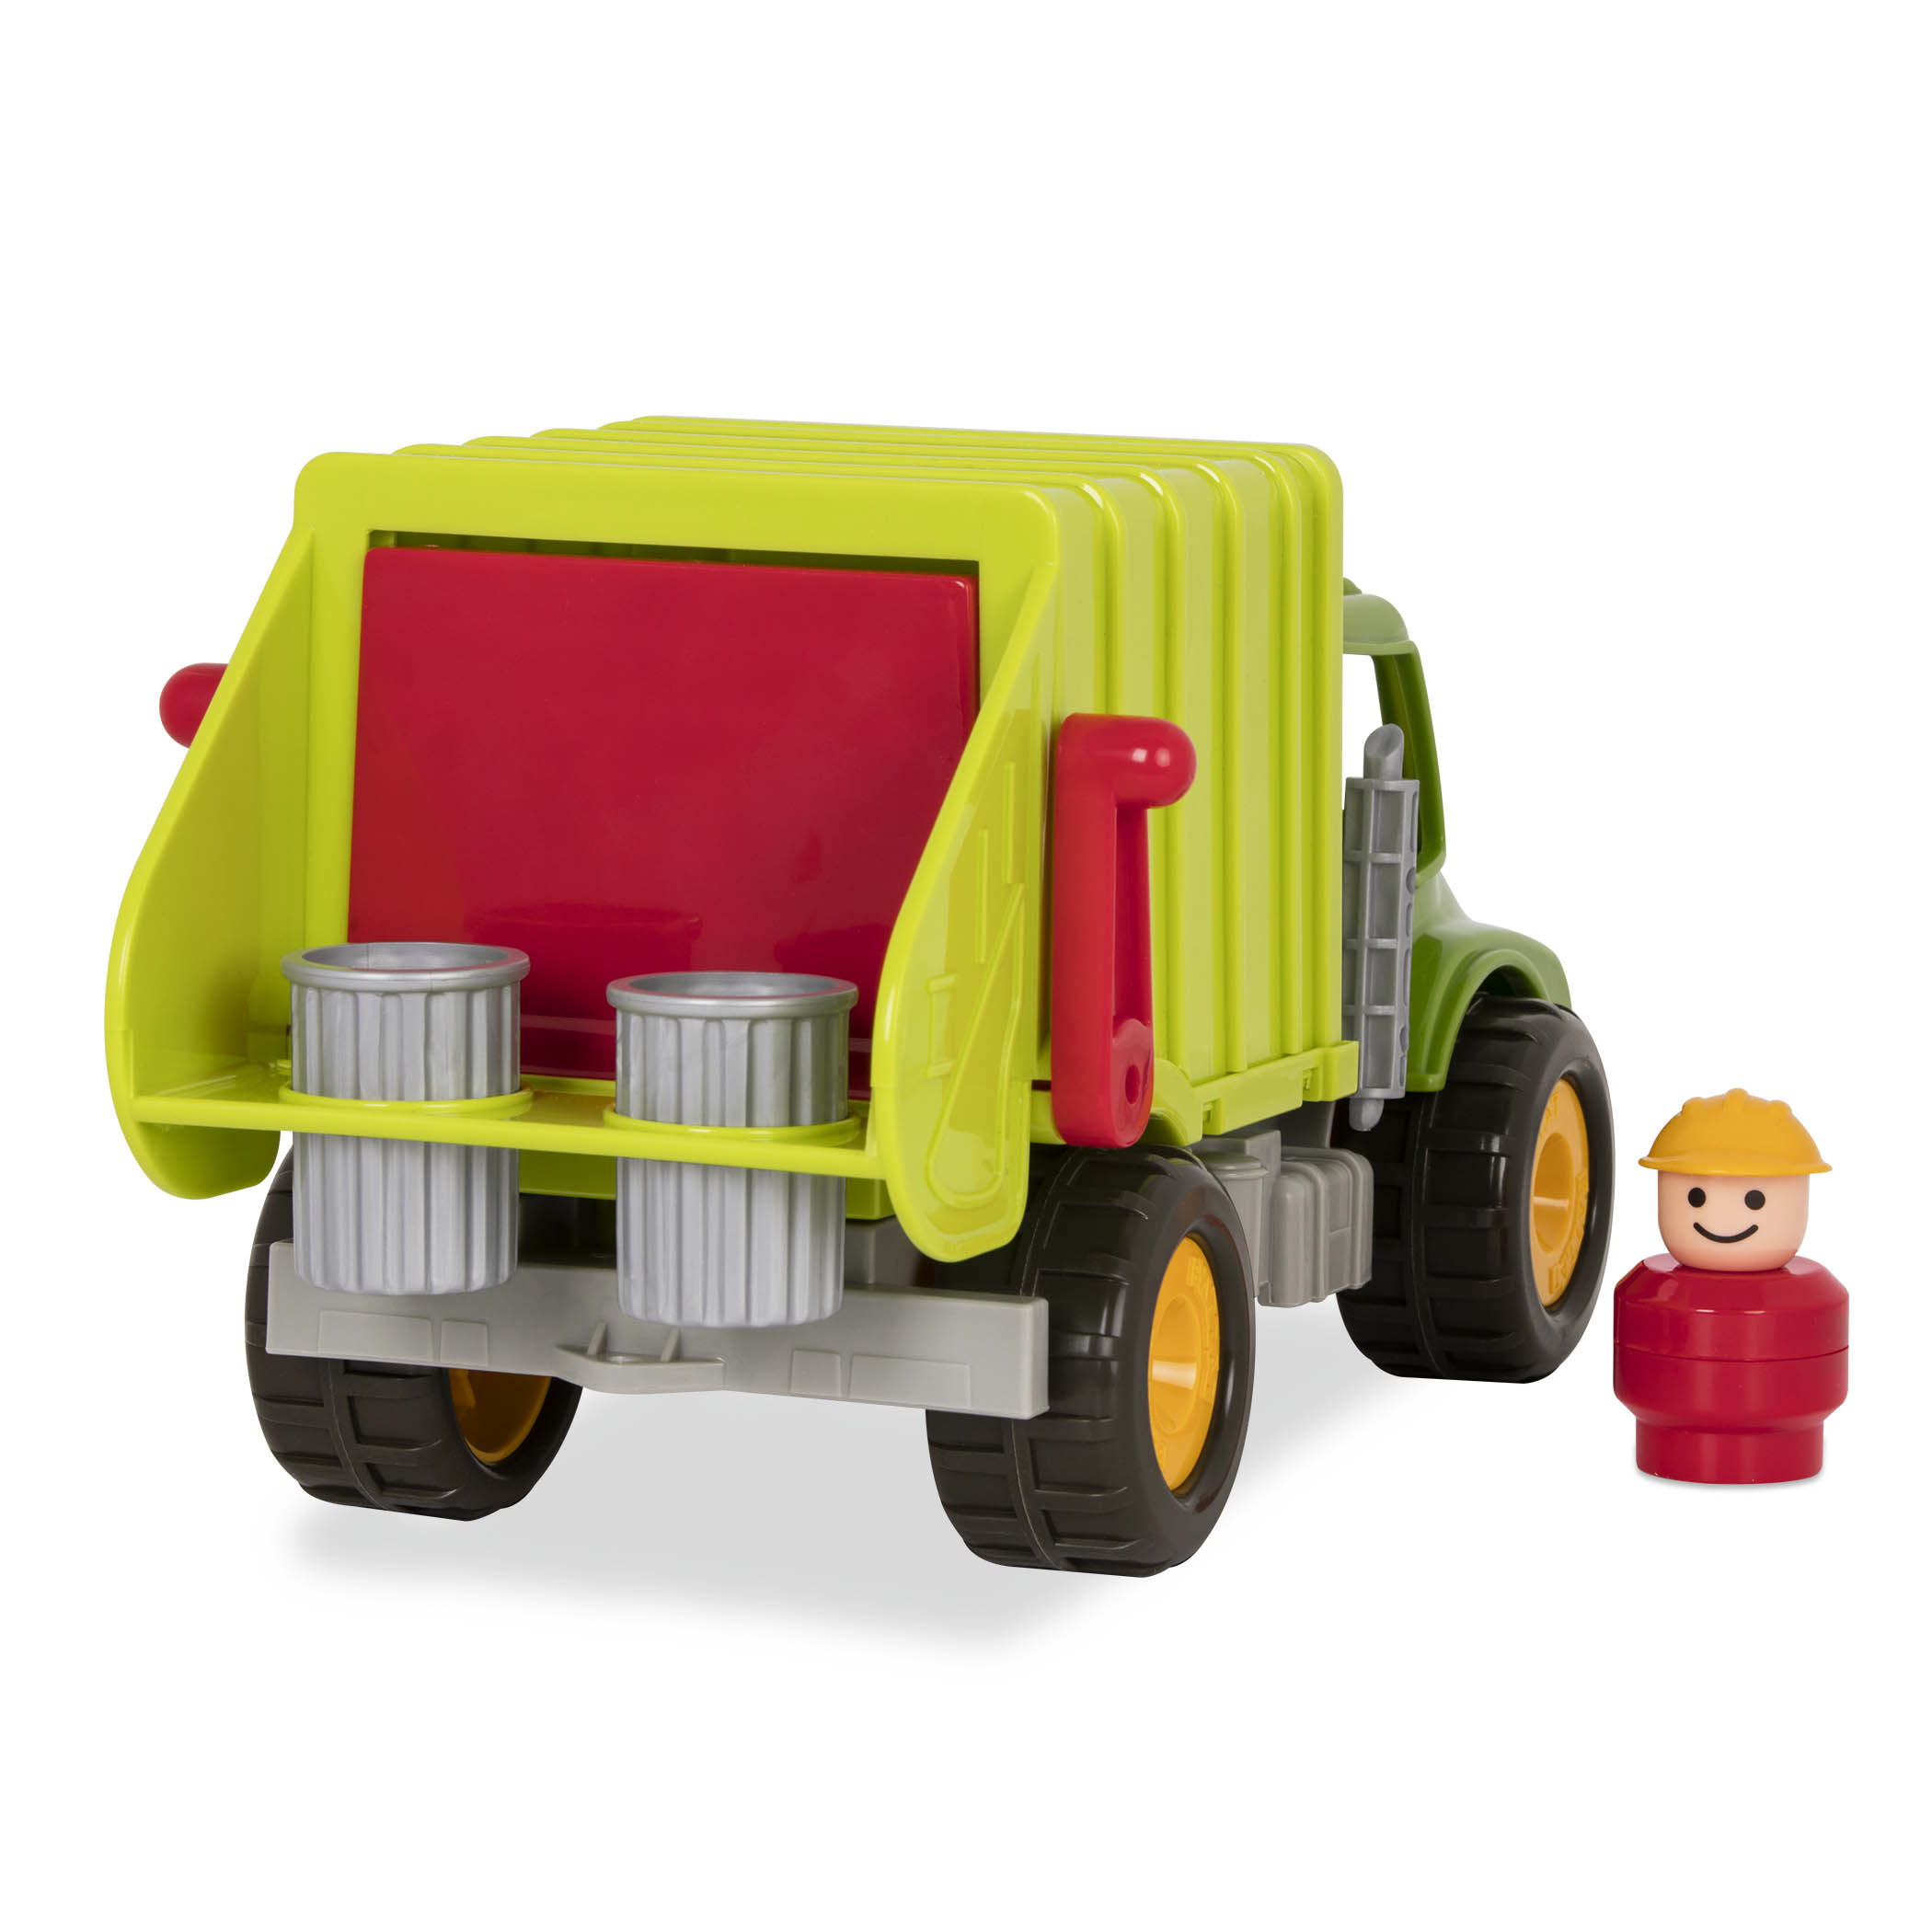 Toy garbage truck and toy character.